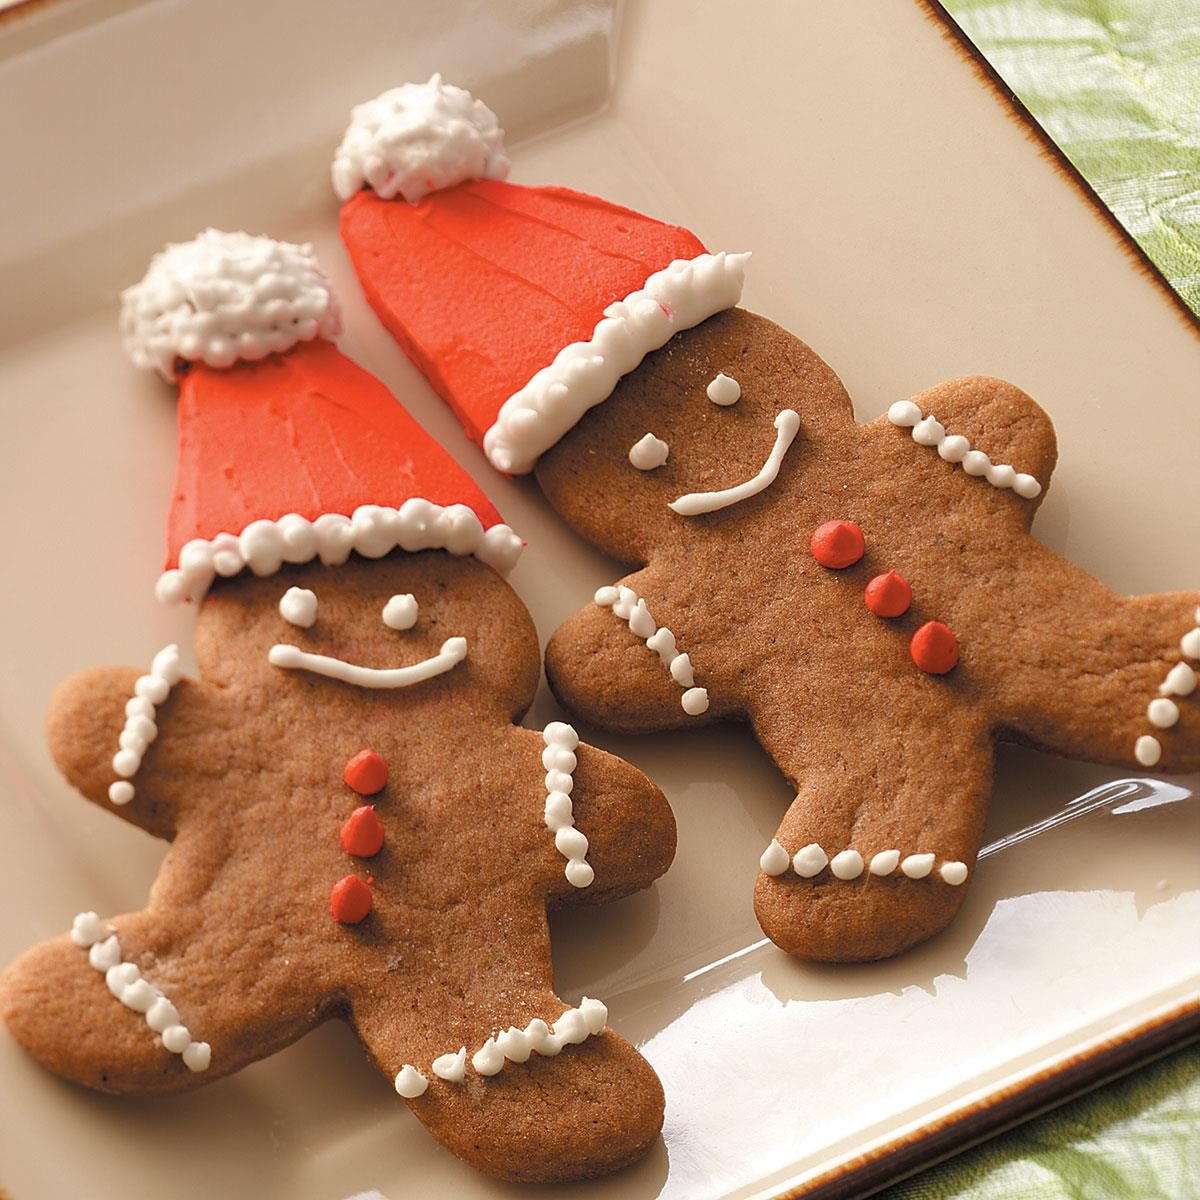 This is a picture of Monster Ginger Bread Images